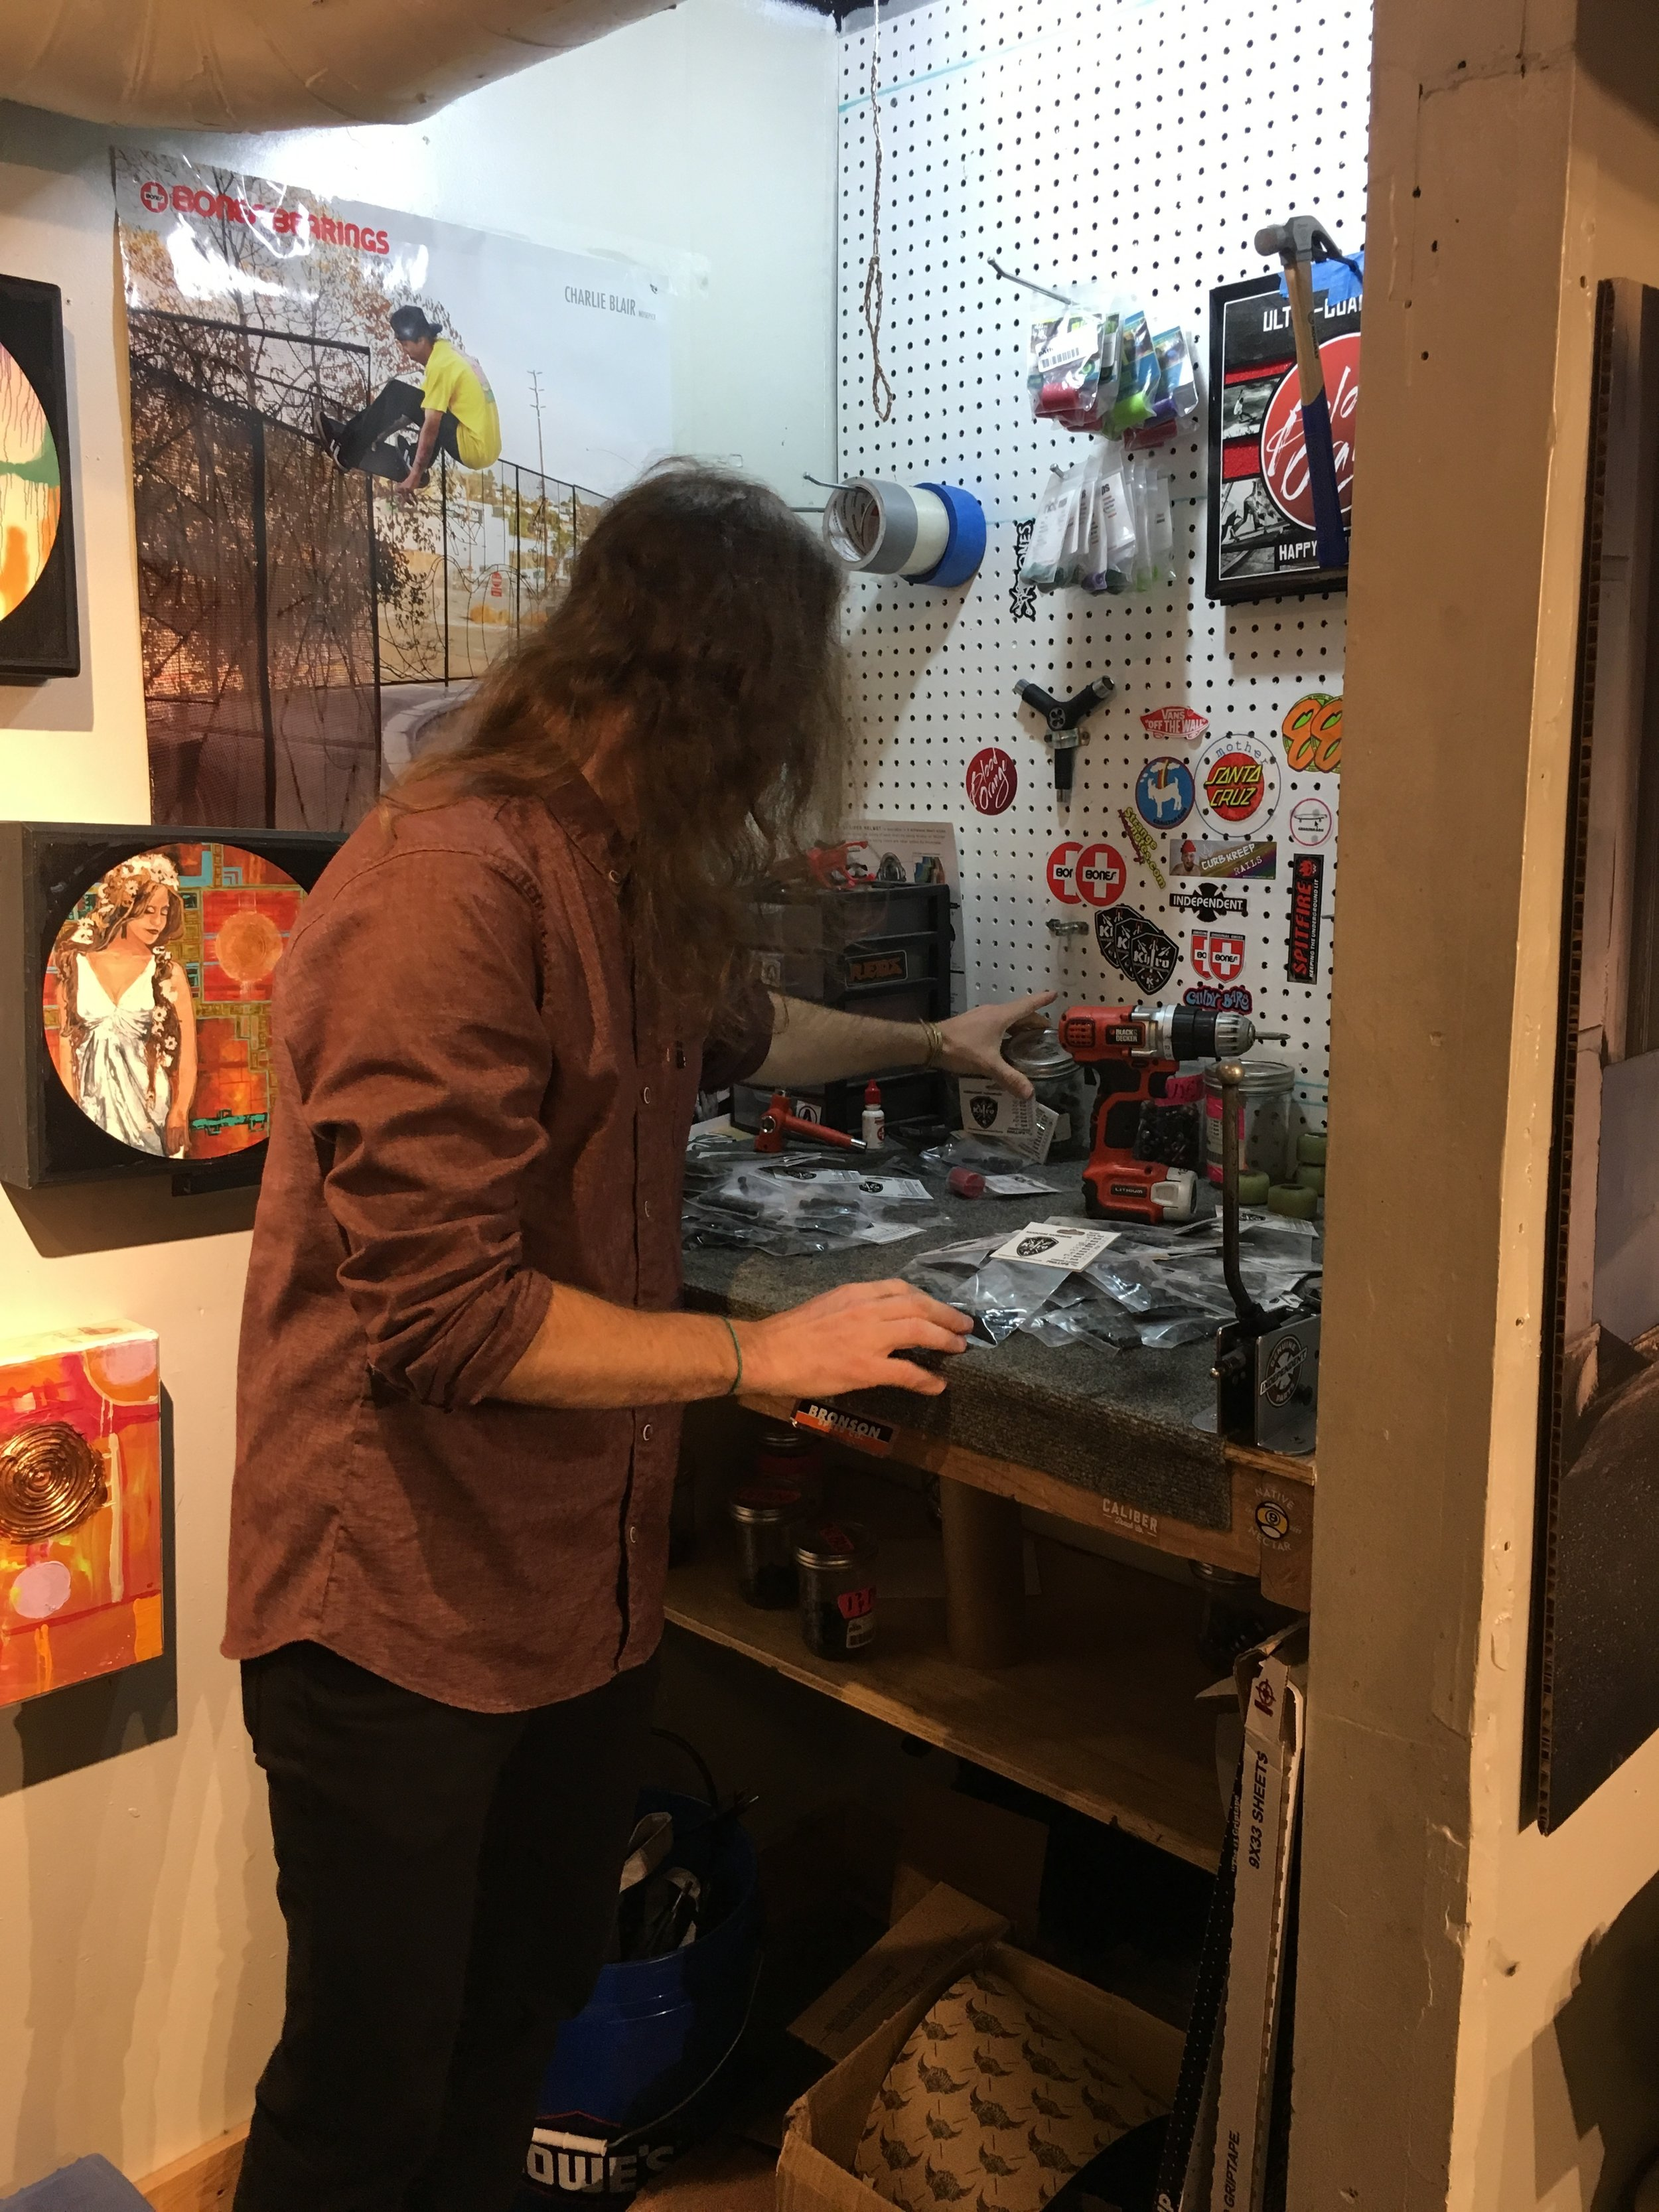 Matt Miller, organizes through newly arrived skateboard product,  Riser Pads  in the back of his shop Friday, Apr. 21, 2017. Custumers have the option to place  Riser Pads  on their skateboard if they desire.